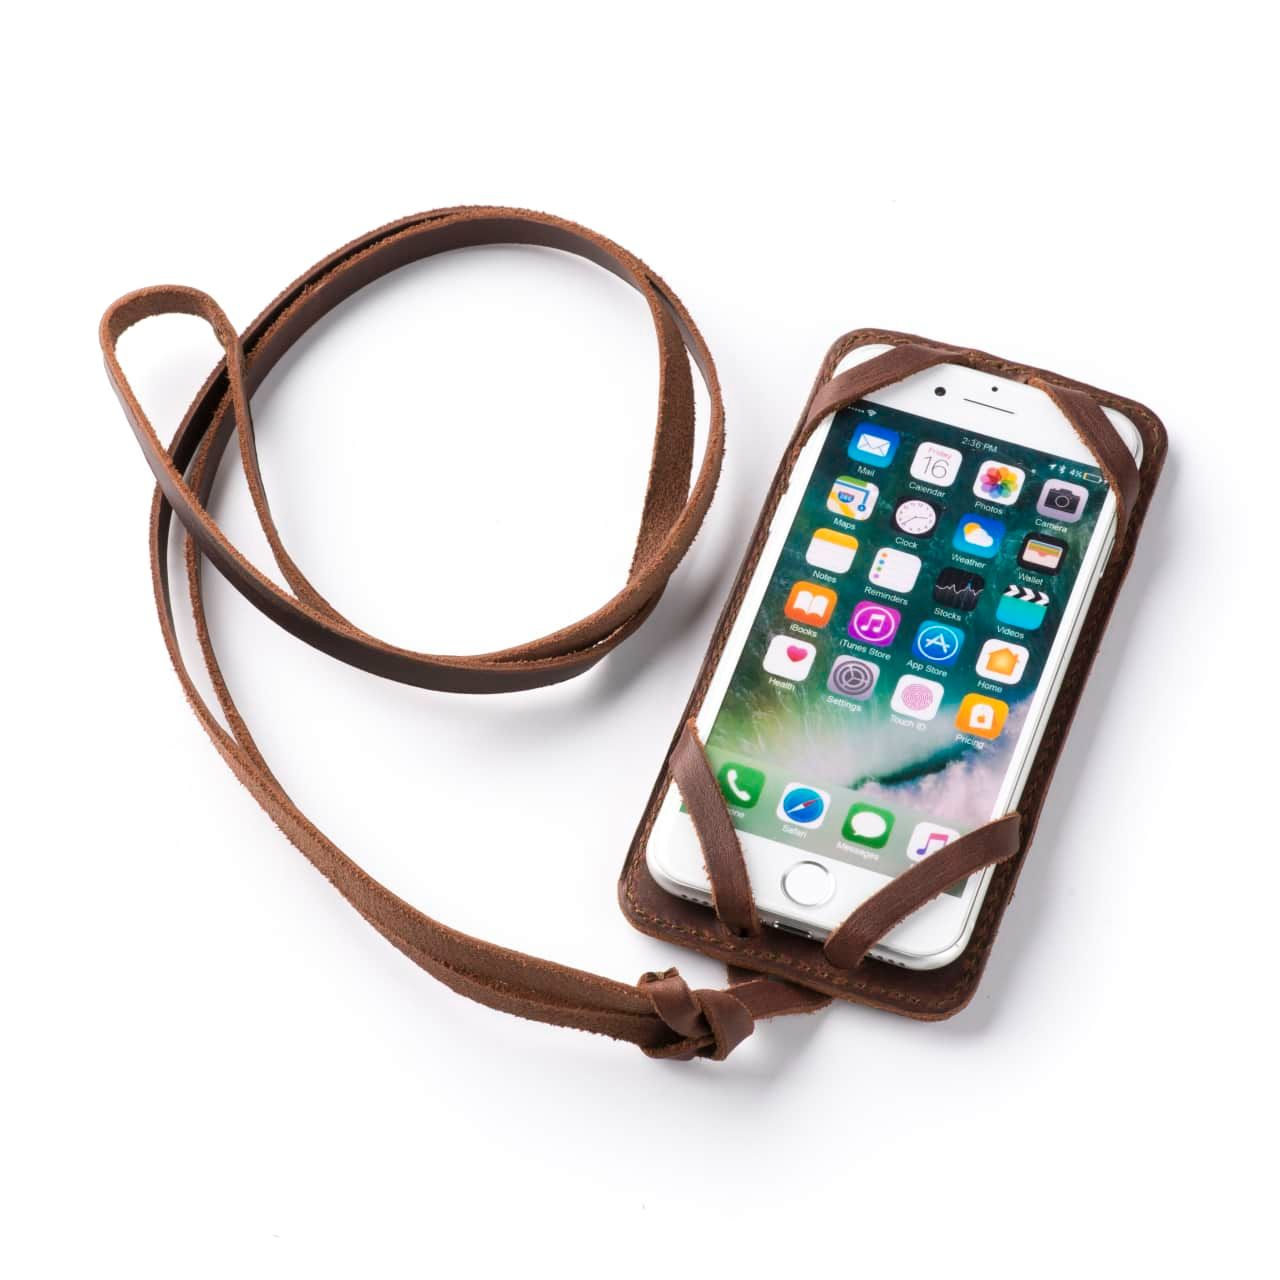 Leather iPhone 8 Case in Color Chestnut with the Lanyard attached front angle with phone in the case